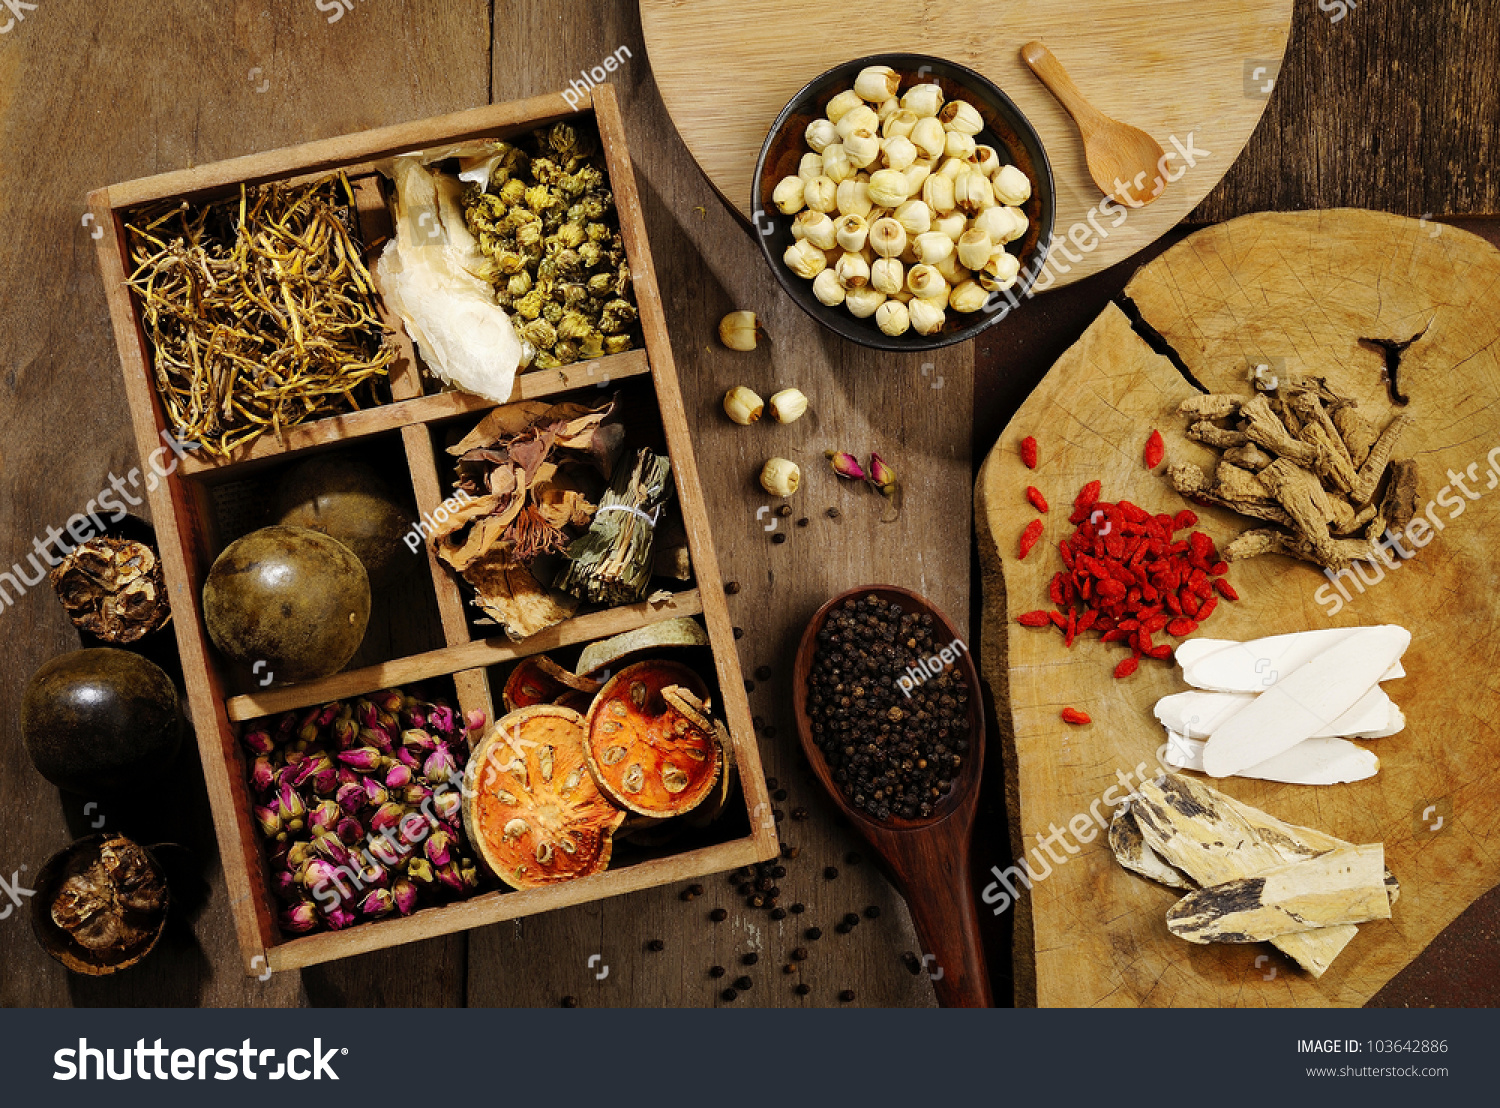 Chinese flower tea - Chinese Herbal Medicine And Flower Tea On Wooden